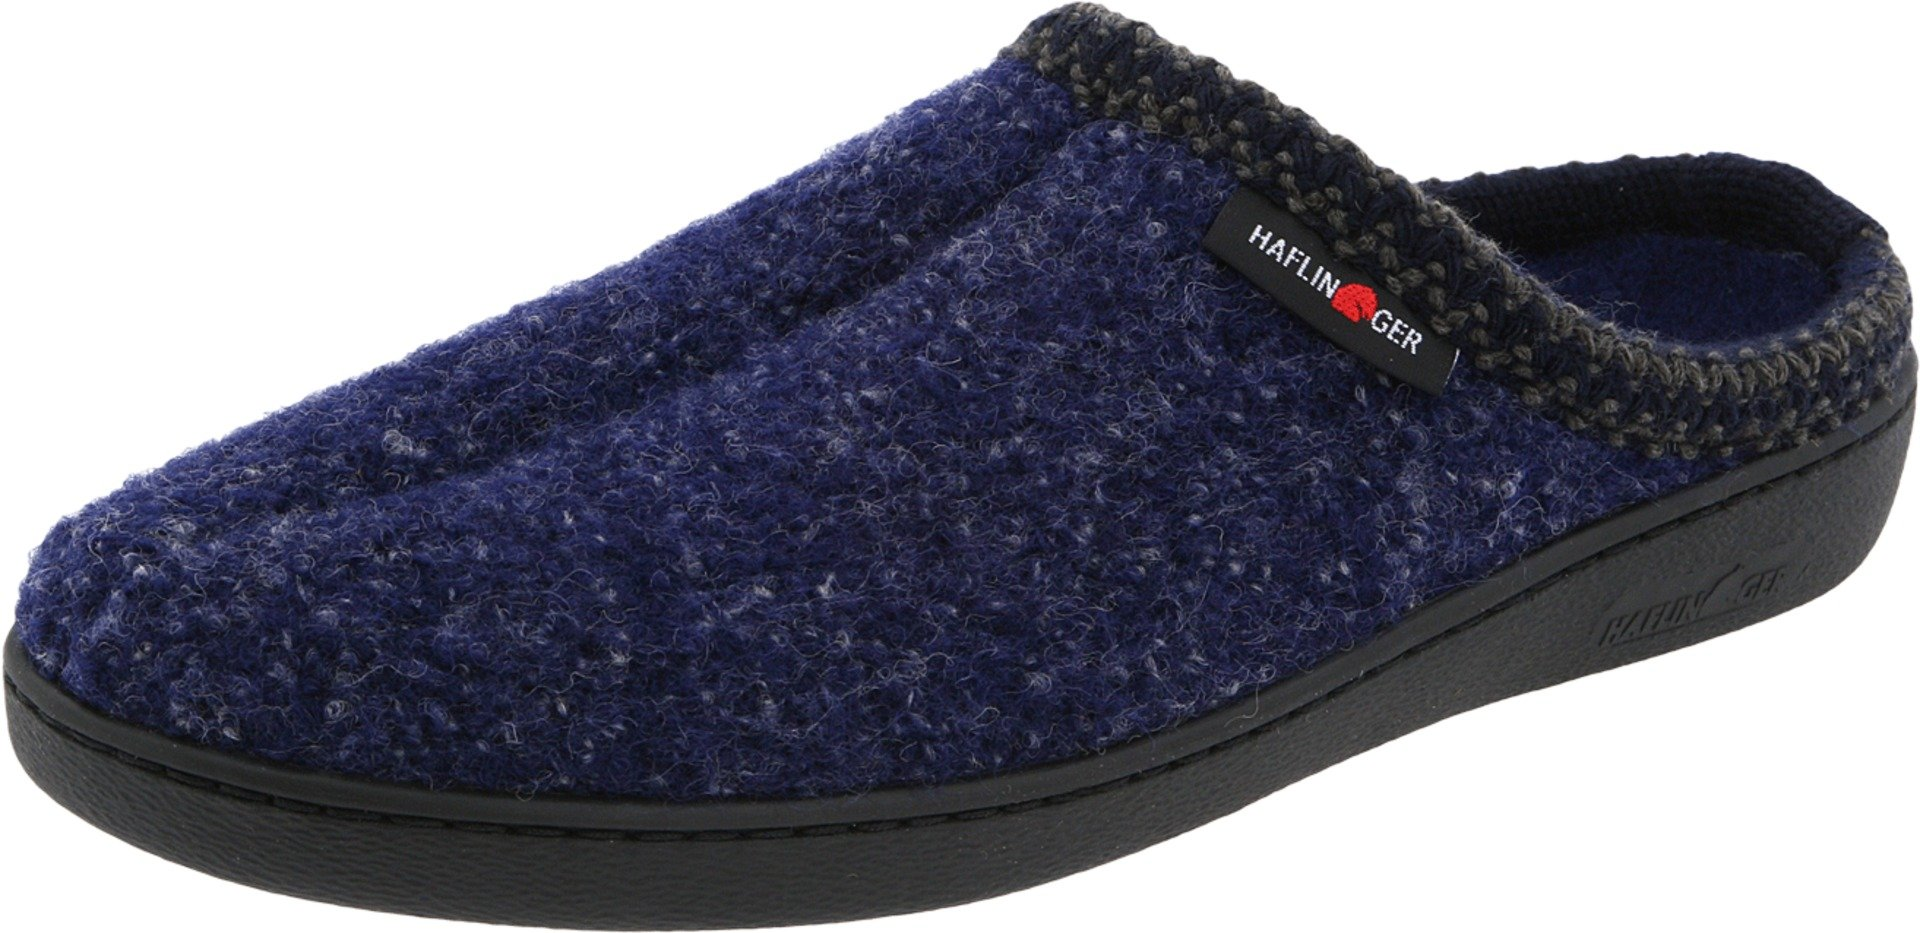 Haflinger Unisex AT Classic Hardsole Boiled Wool Hard Sole Slipper, Navy Speckle, 43 EU/12 M US Women's/10 D US Men by Haflinger